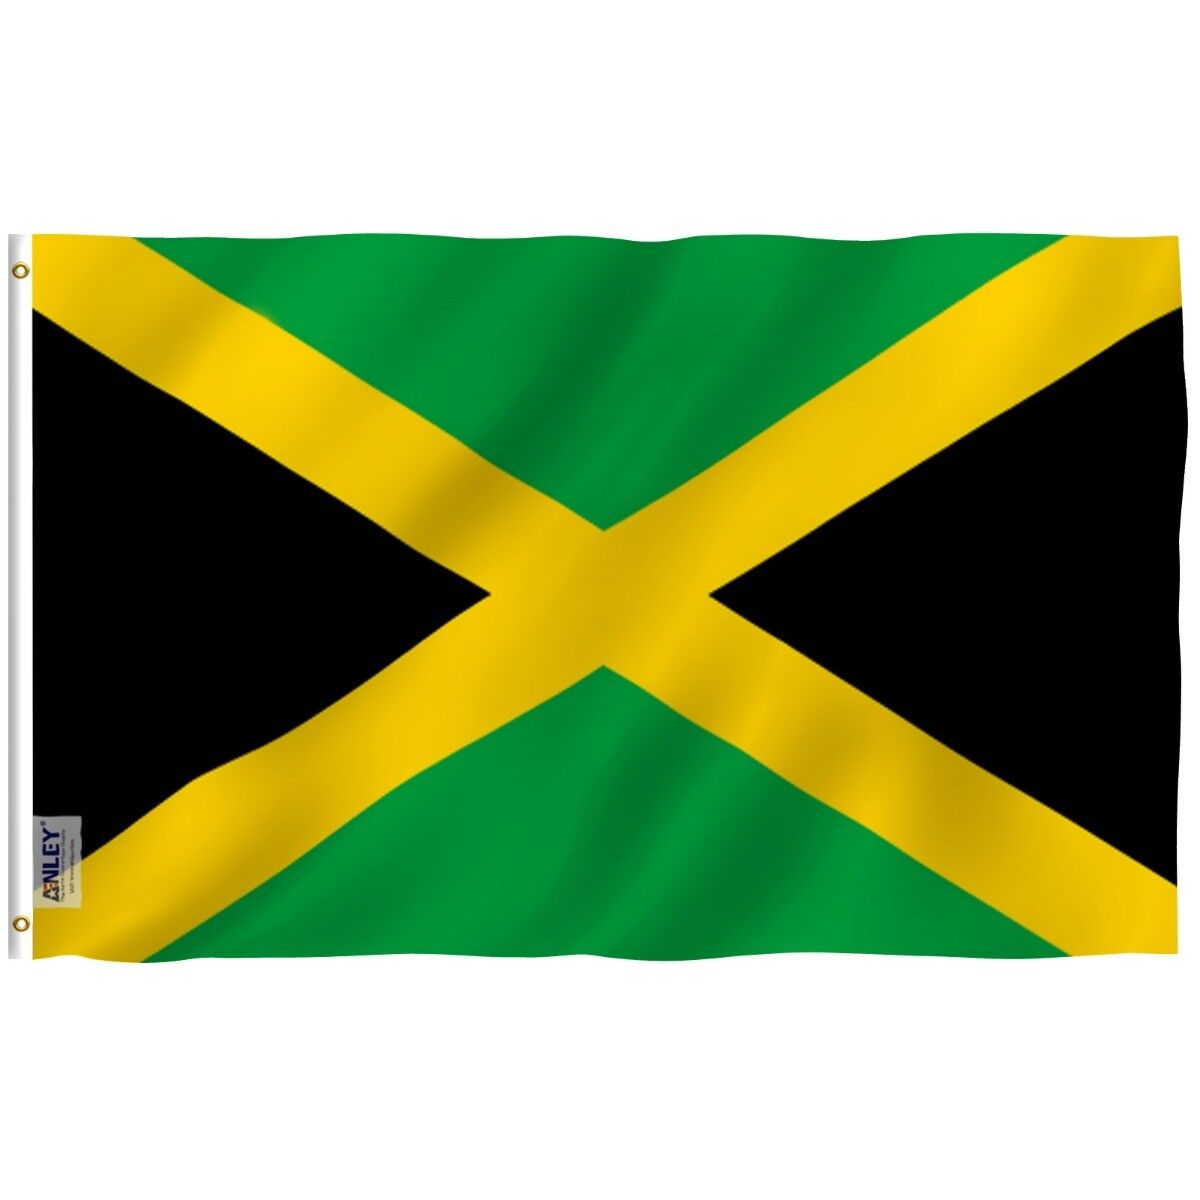 Anley Fly Breeze 3x5 Foot Jamaica Flag Jamaican National Fla